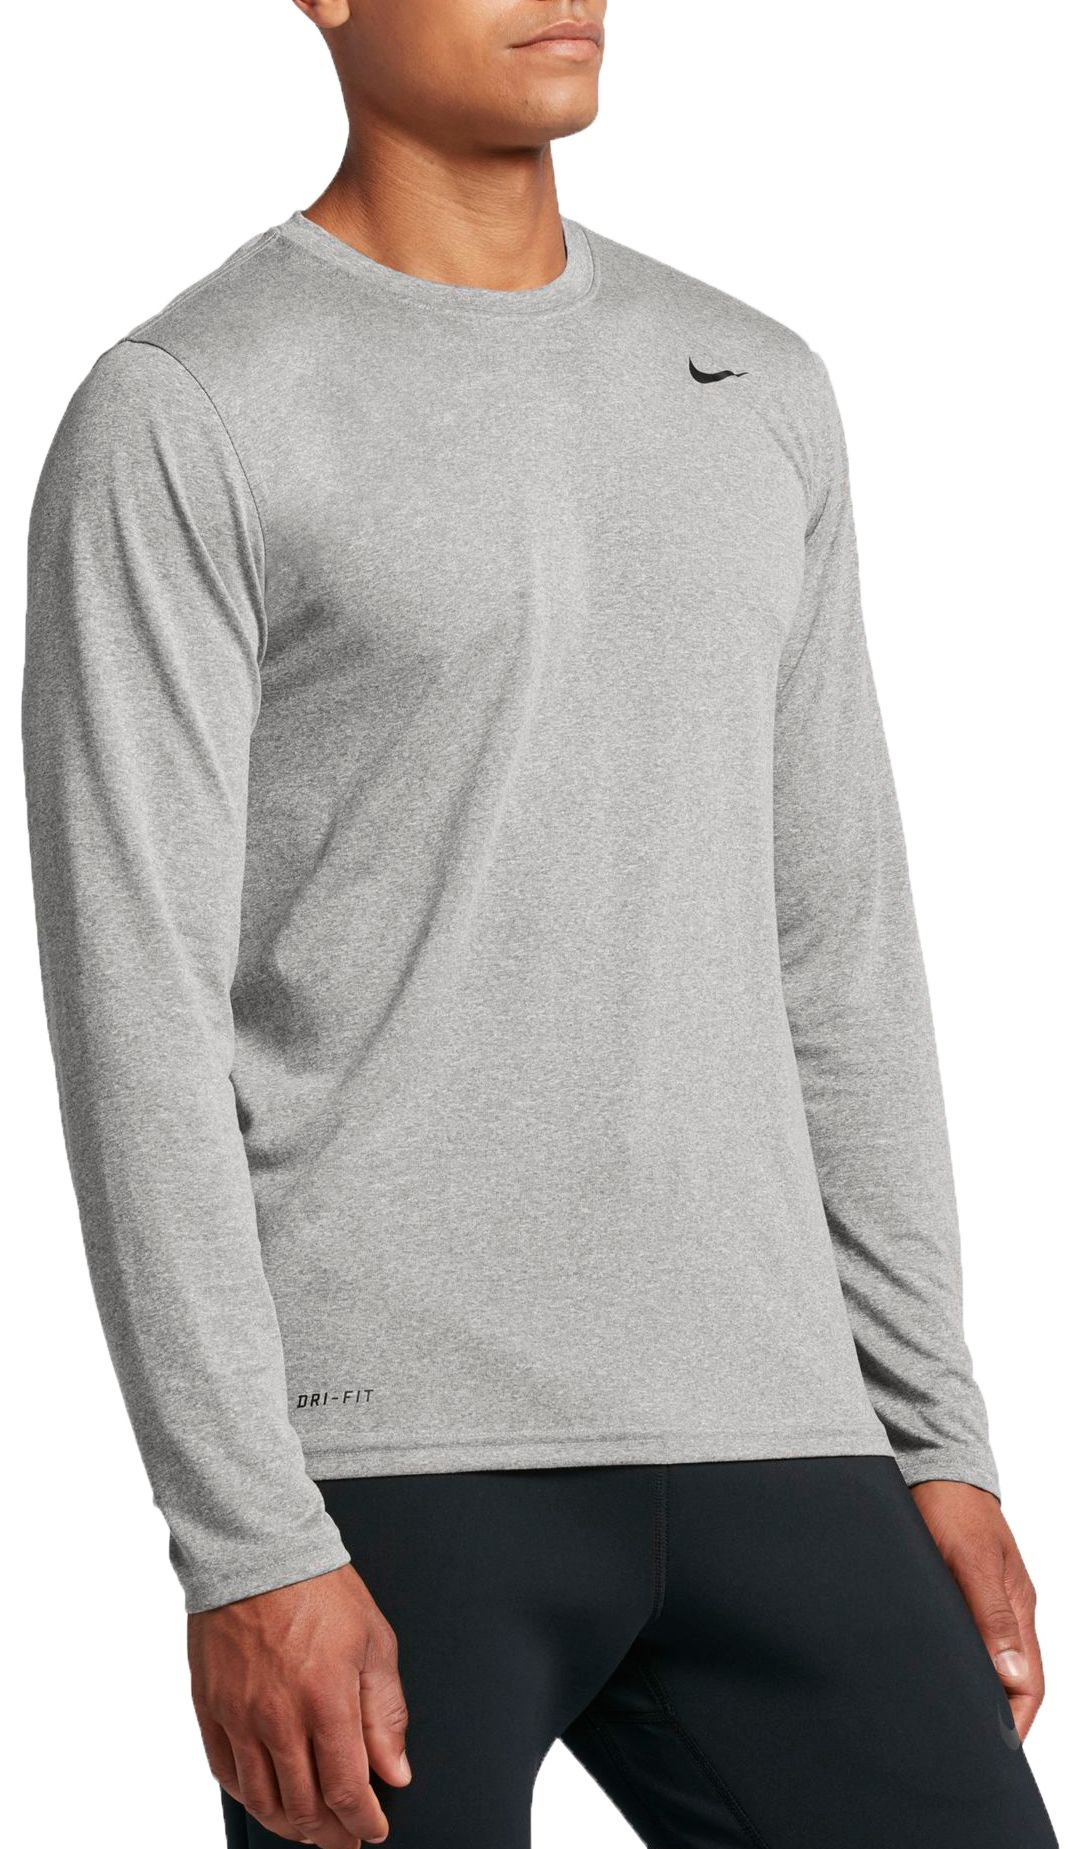 2173ad73cc44b Nike Men's Legend Long Sleeve Shirt